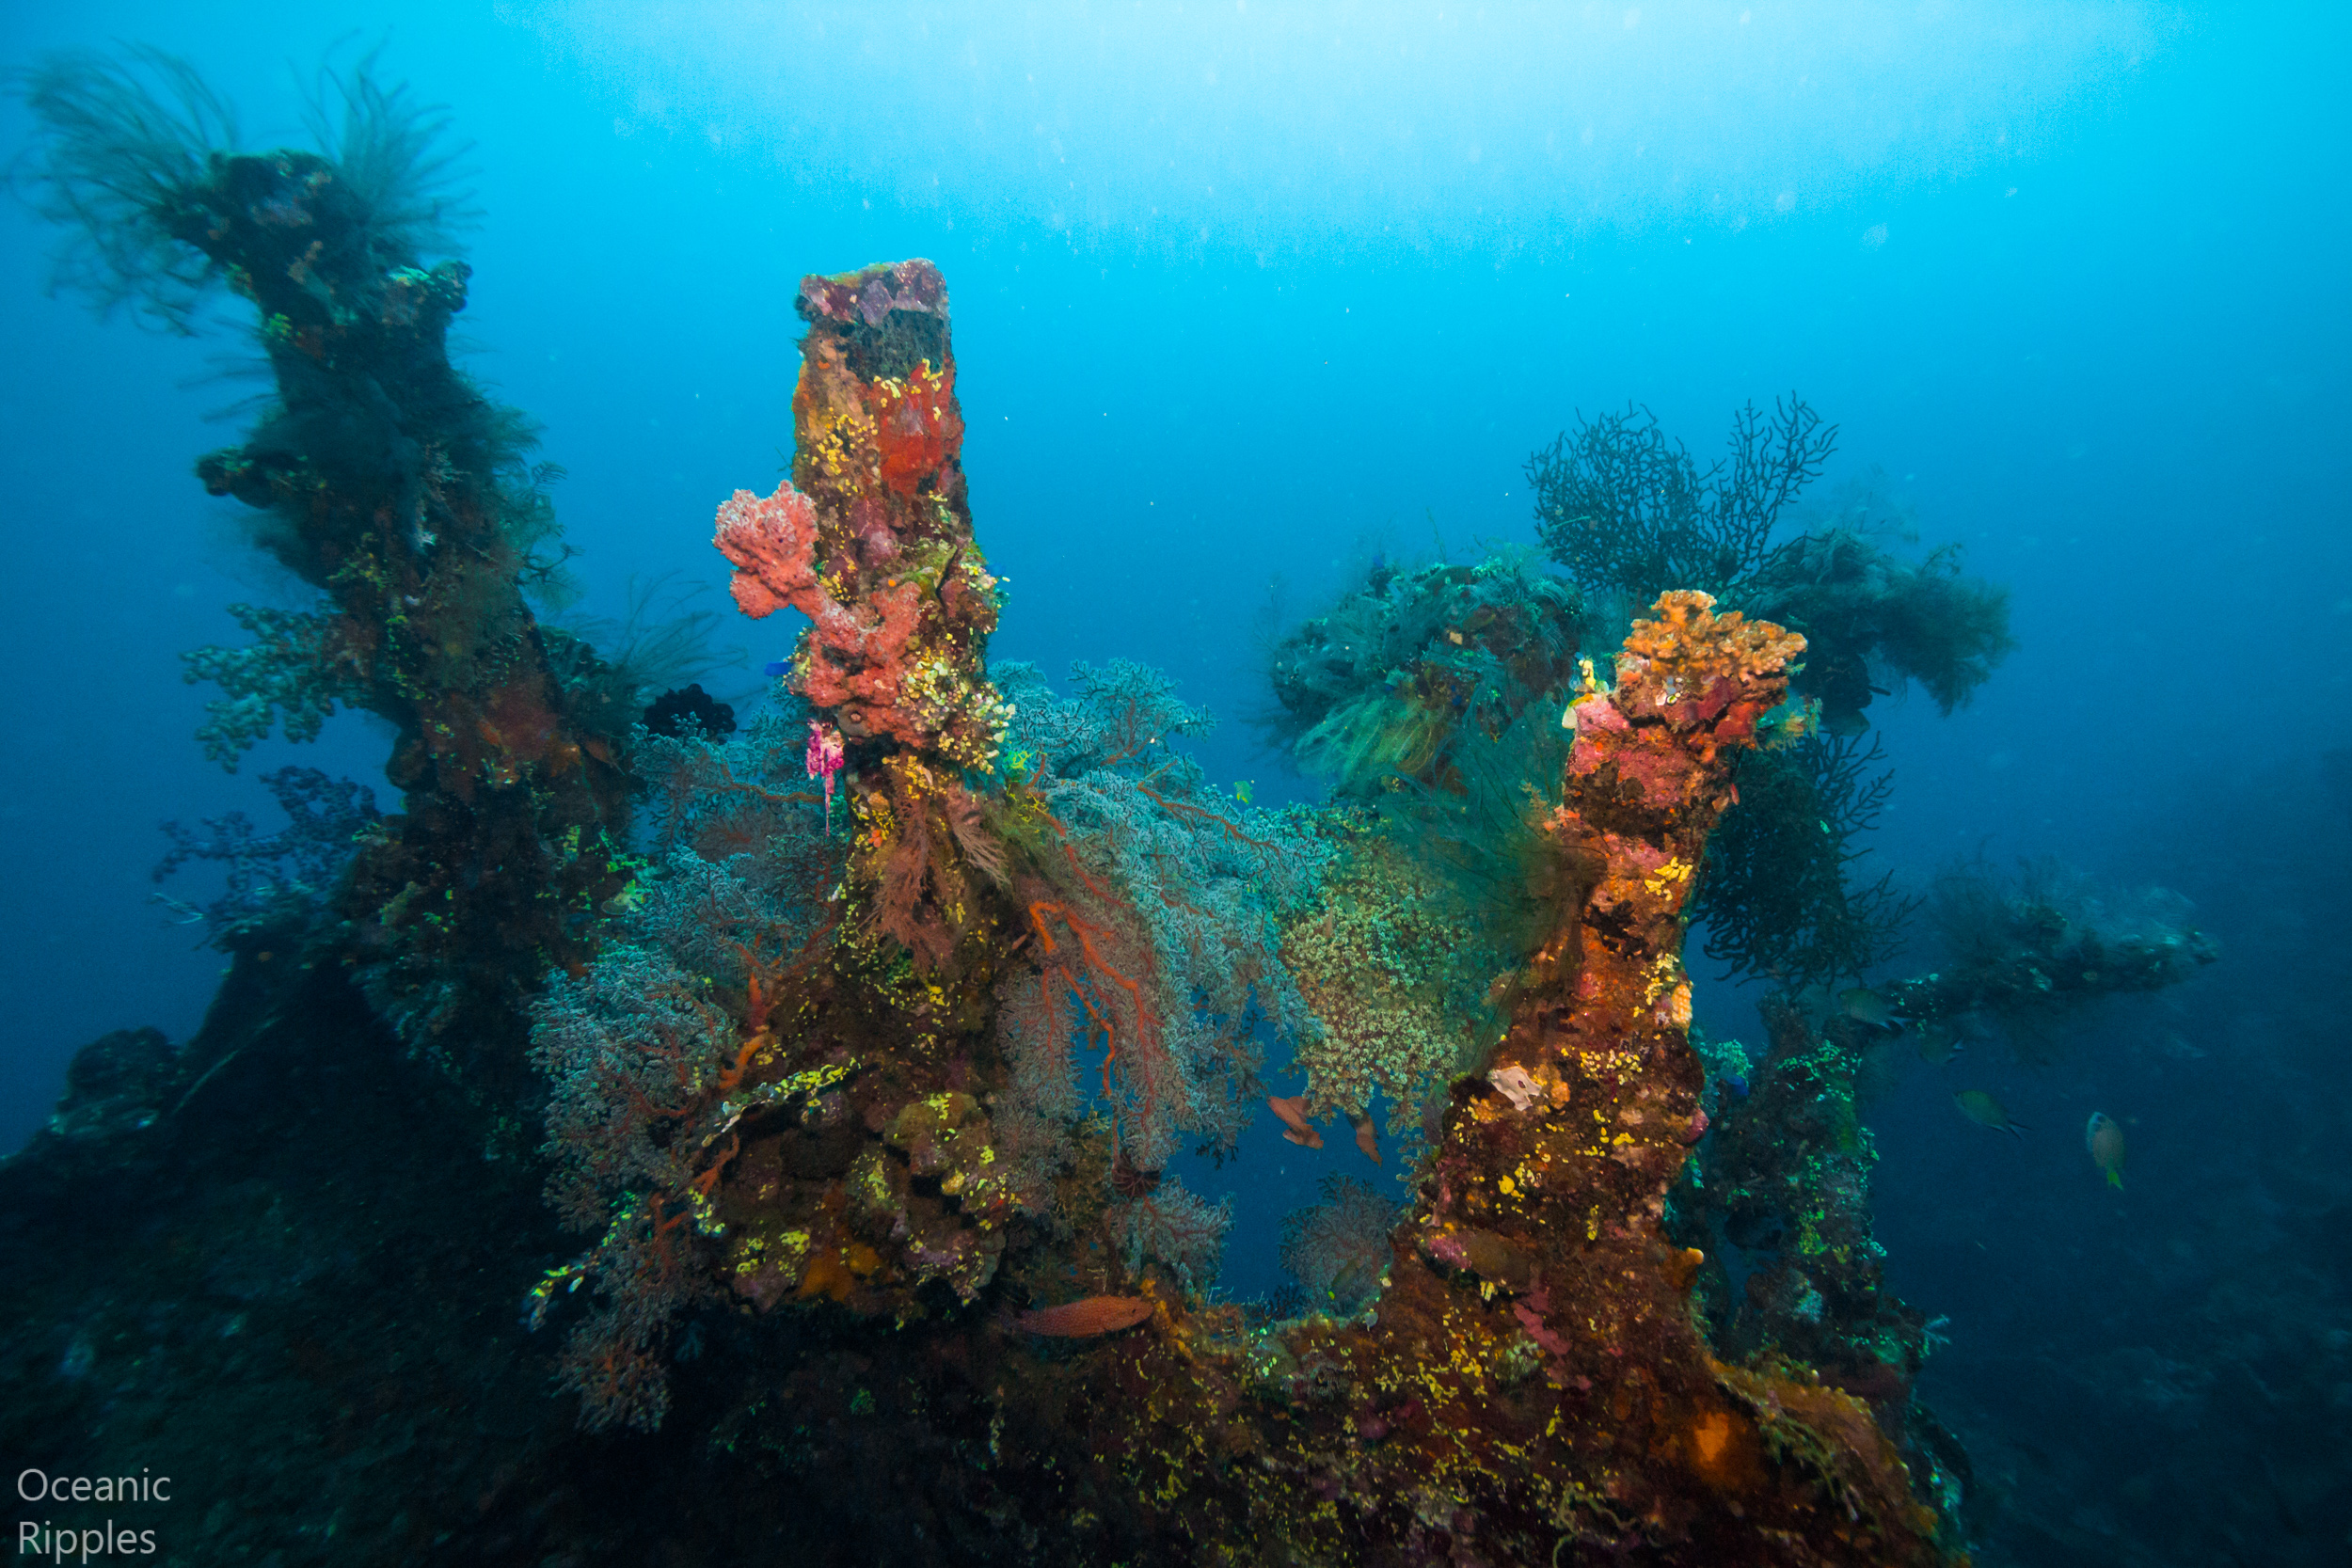 Some features of the USAT Liberty wreck at Tulamben. The wreck is entirely covered by coral, which can provide colorful, although occasionally busy photographic scenes.